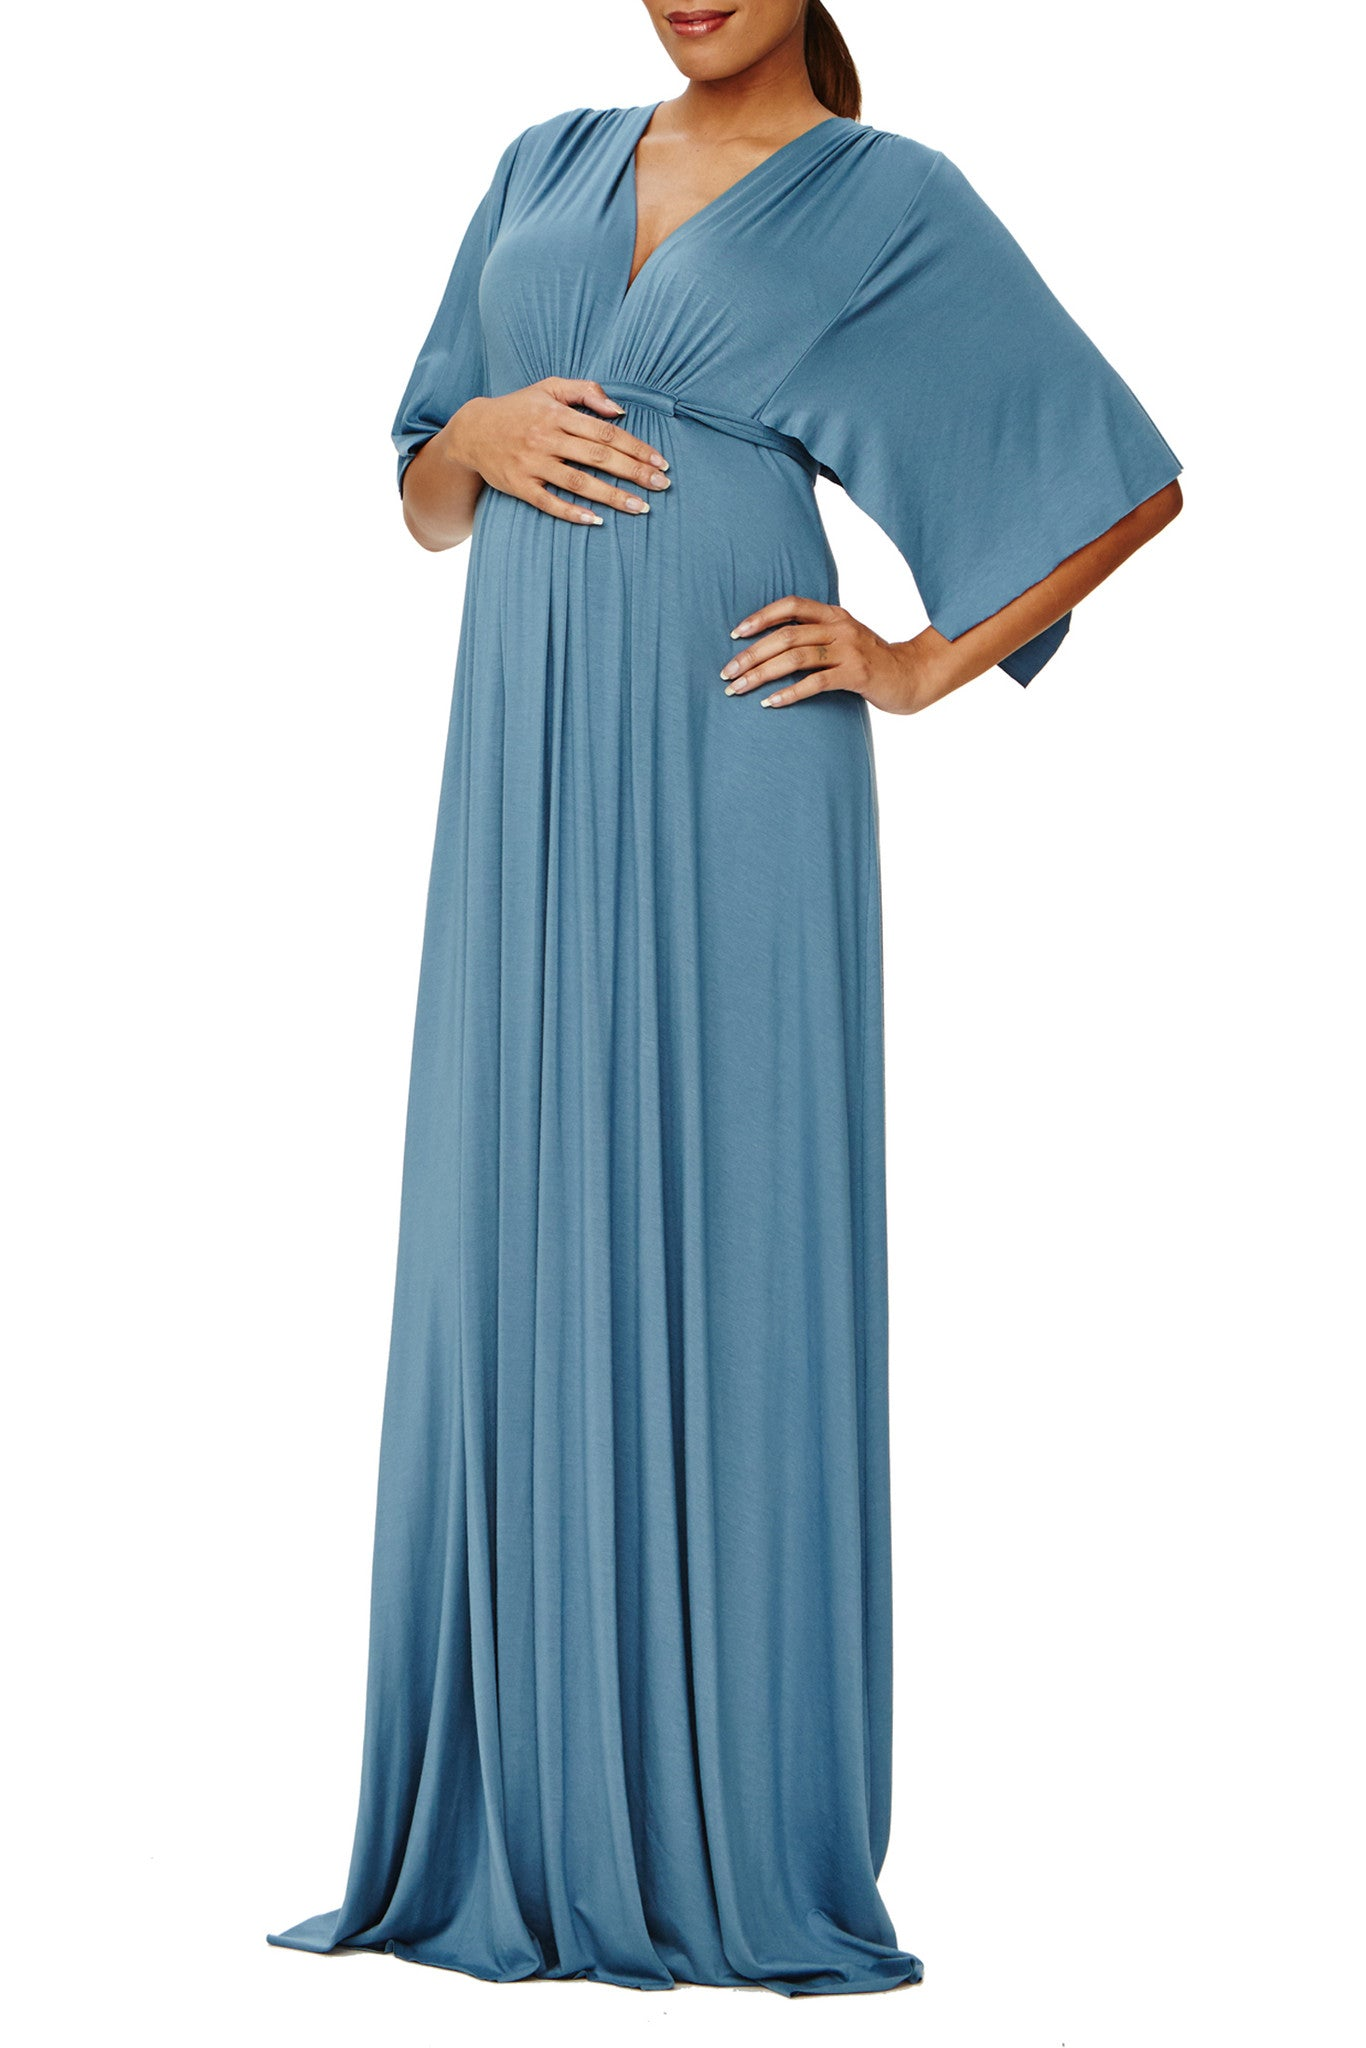 Long Caftan Dress - Moonflower